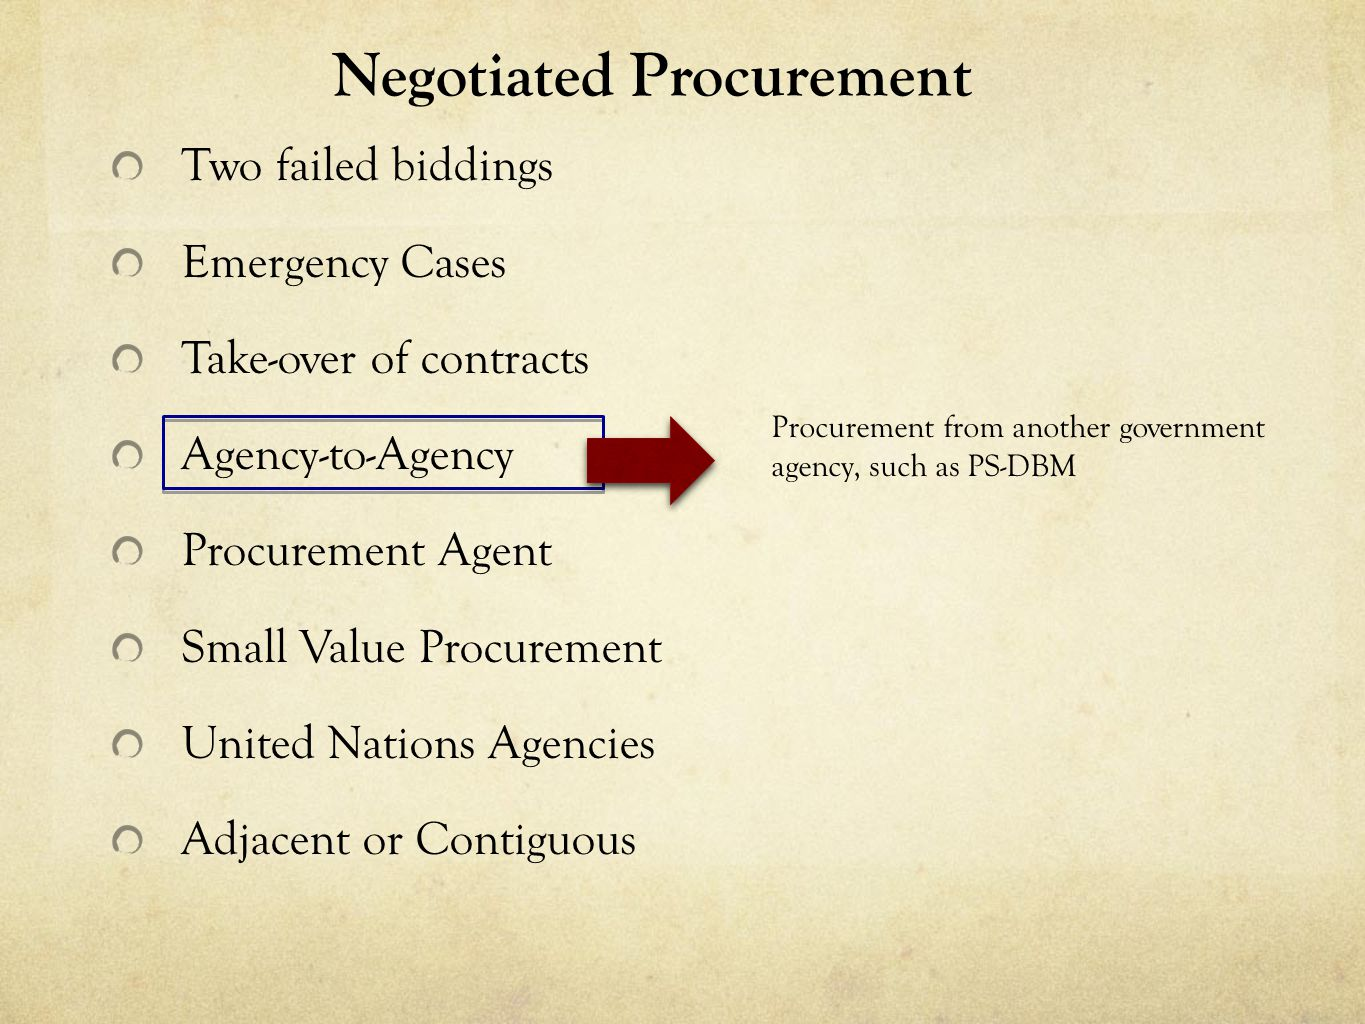 Negotiated Procurement Two failed biddings Emergency Cases Take-over of contracts Agency-to-Agency Procurement Agent Small Value Procurement United Nations Agencies Adjacent or Contiguous Procurement from another government agency, such as PS-DBM